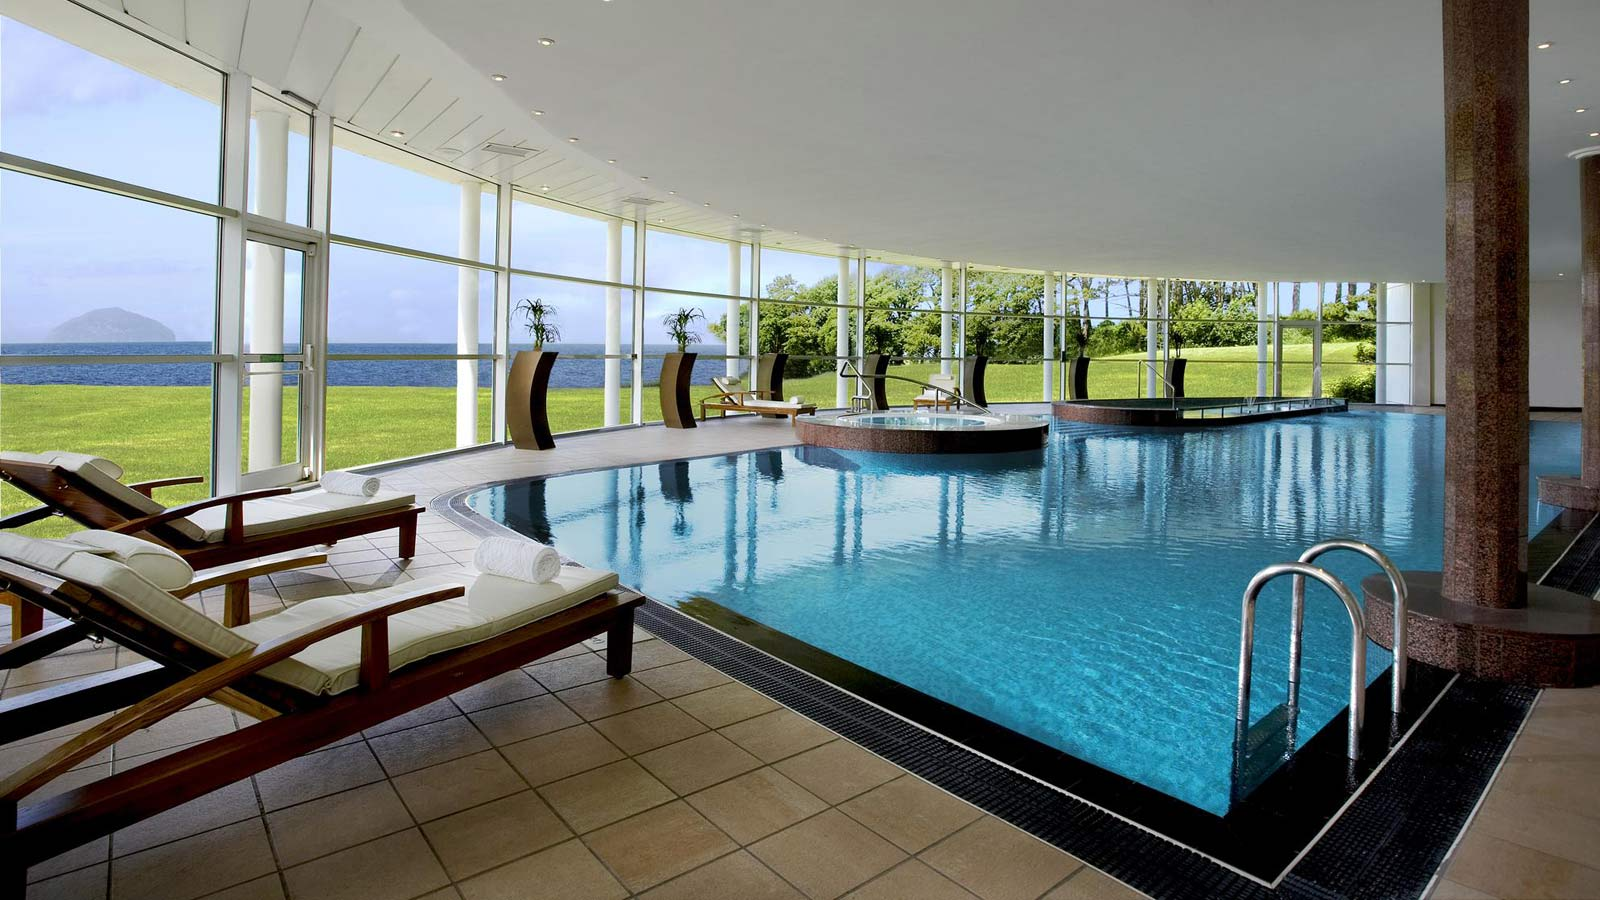 About Trump Turnberry Resort Spa Golf Vacations